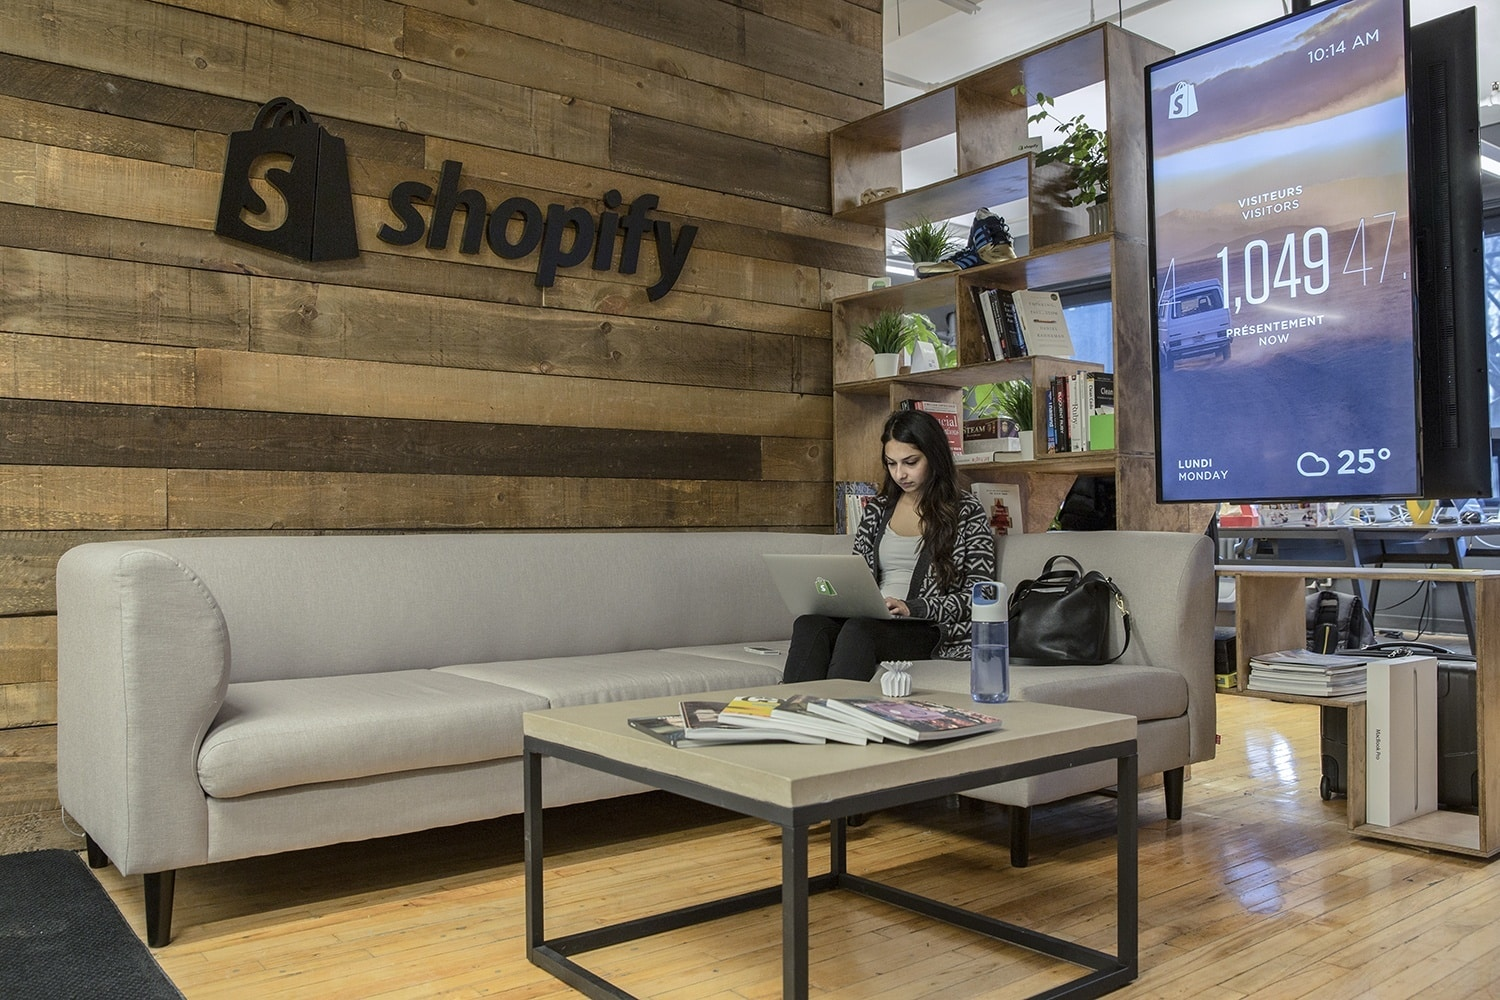 shopify montreal 2